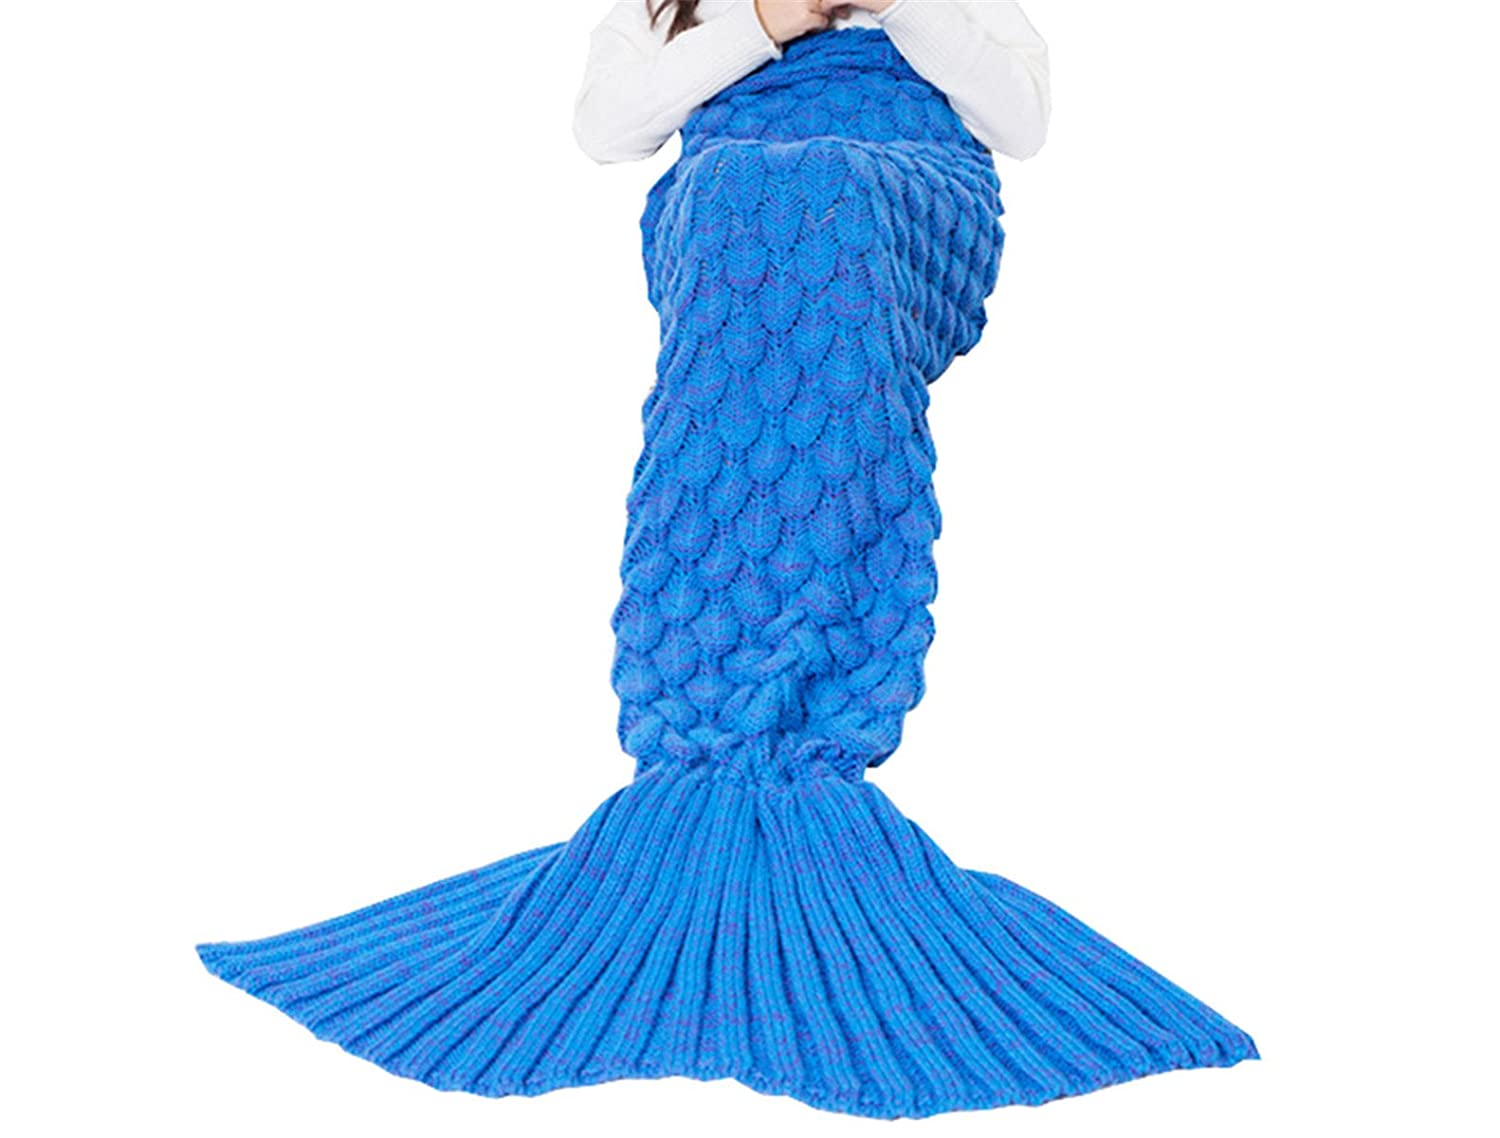 Triseaman Women and Girls Mermaid Tail Blanket Fish scales Pattern Sofa Living Room Sleeping Bag Blue Baby